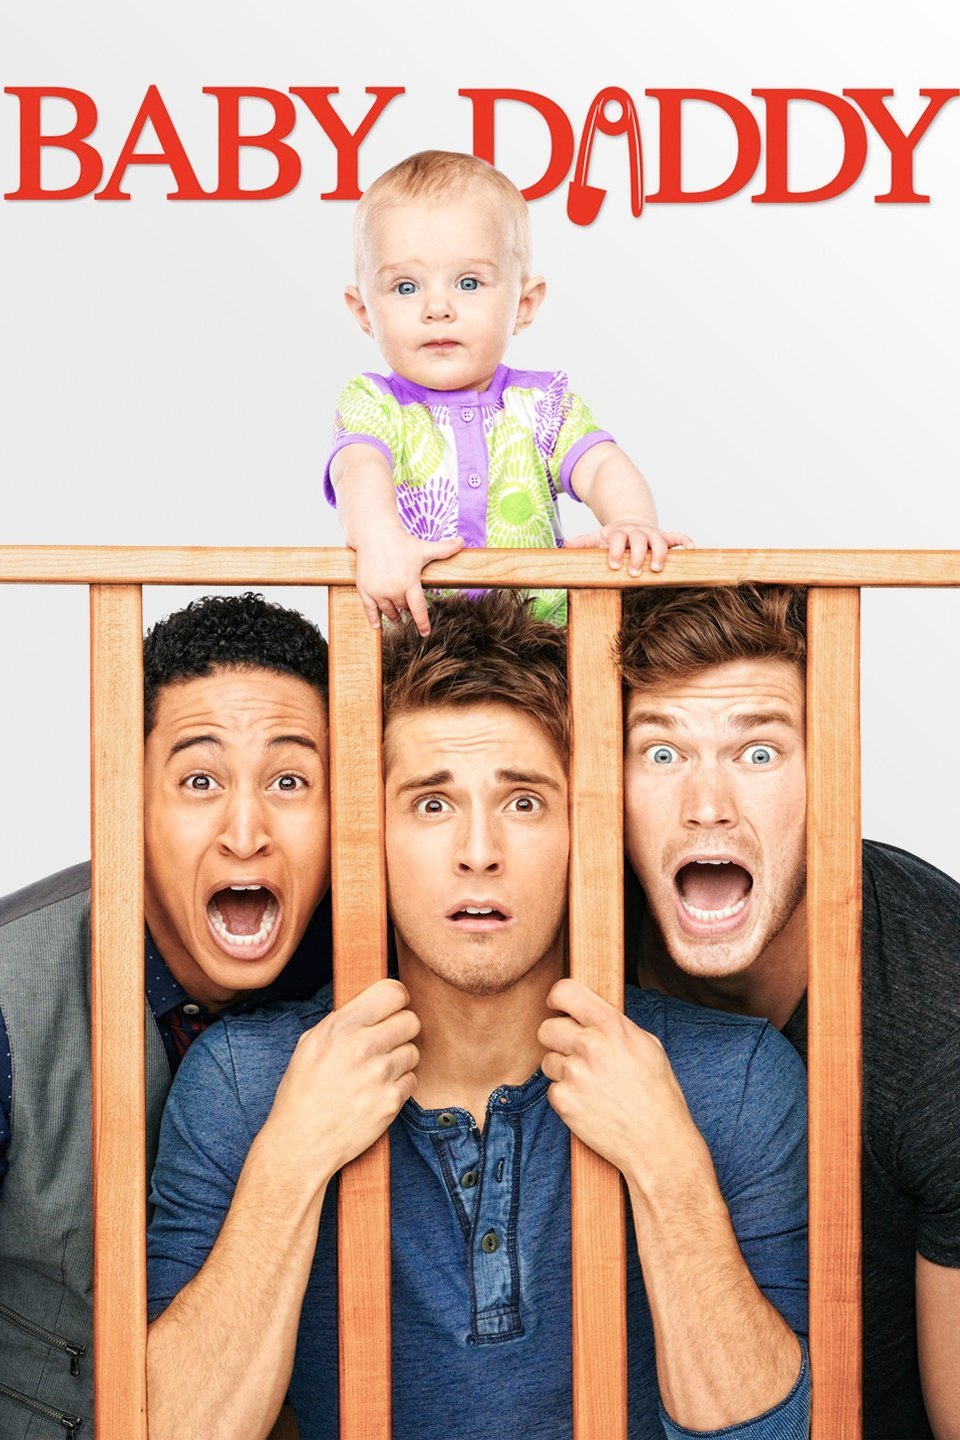 Baby Daddy Season 6 Episode 7 Download 480p WEB-DL 80MB